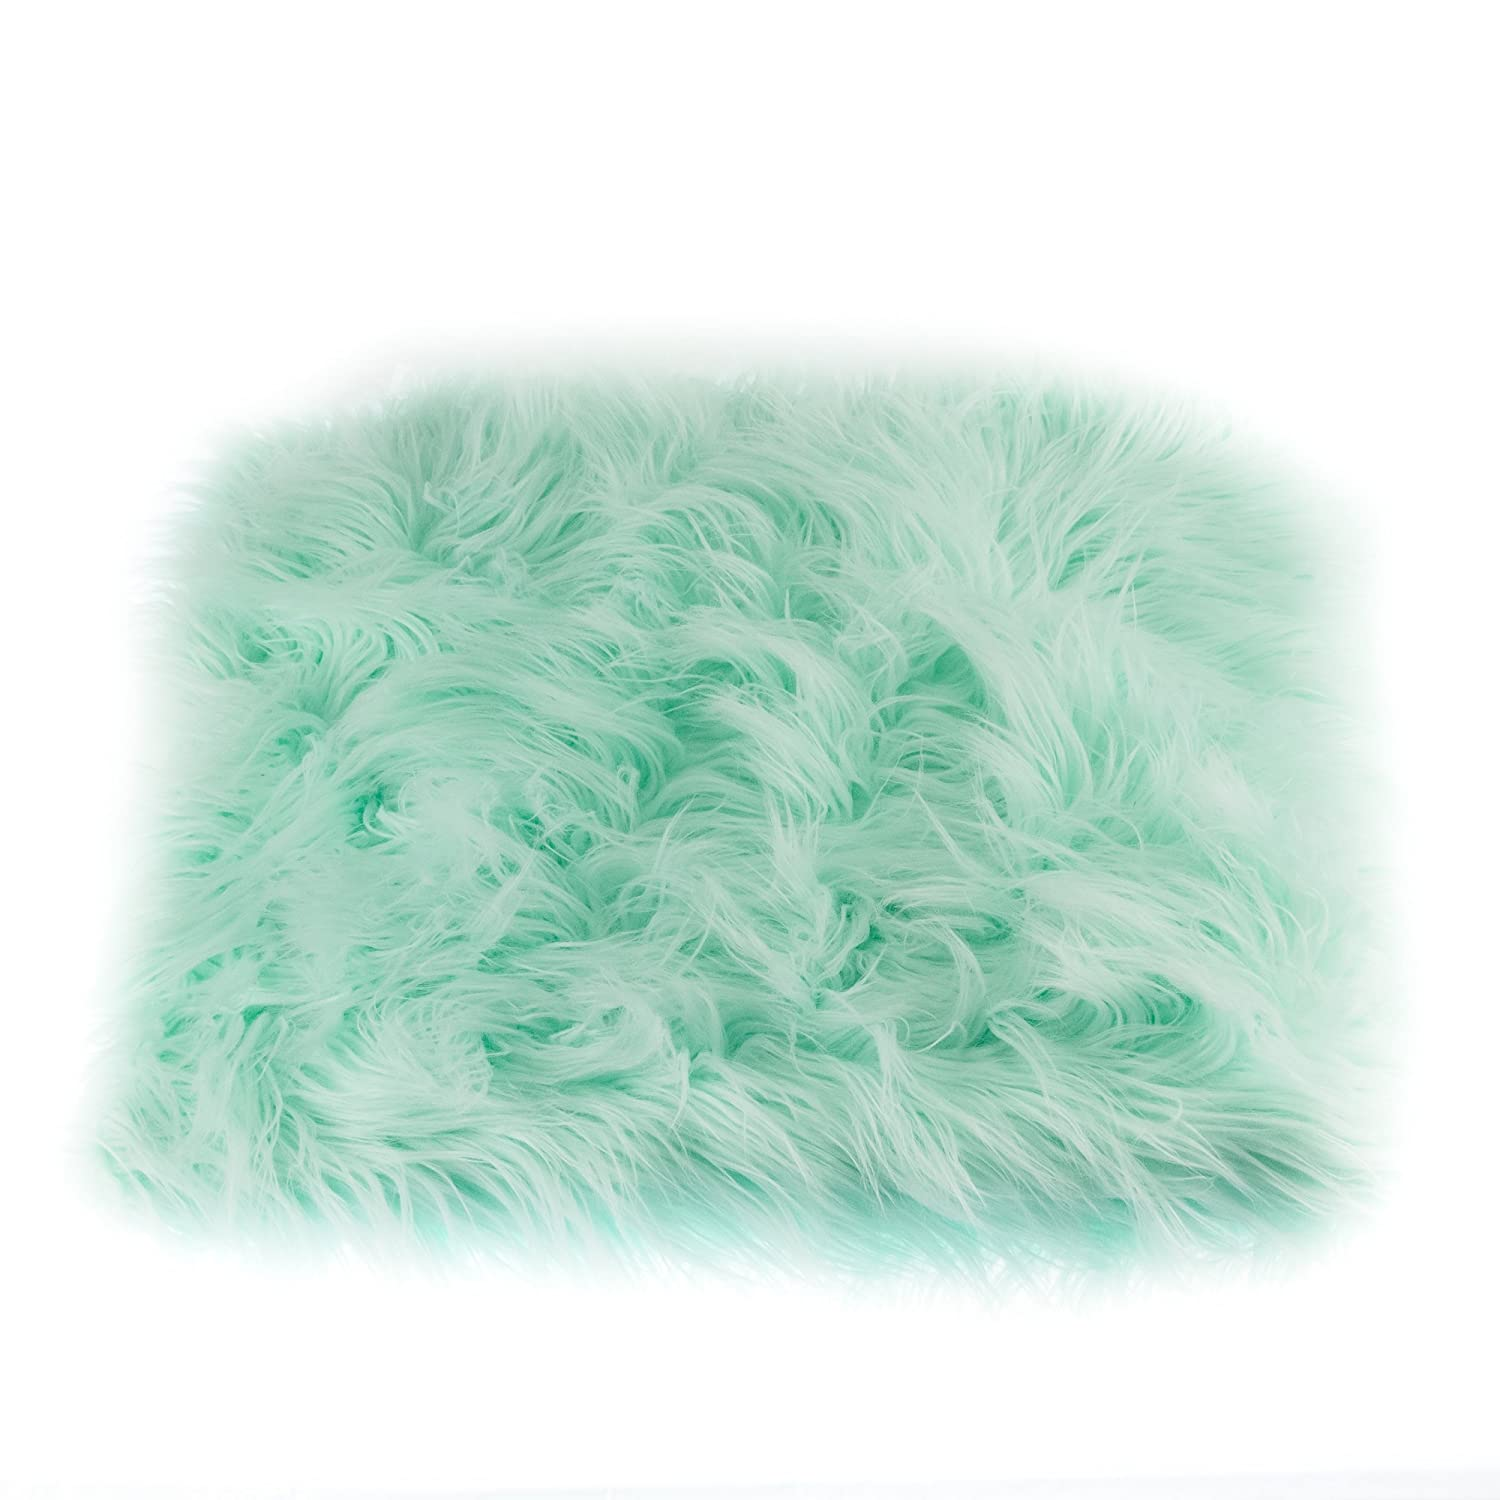 JLIKA Newborn Baby Photography Photo Prop Backdrop Faux Fur 33x40